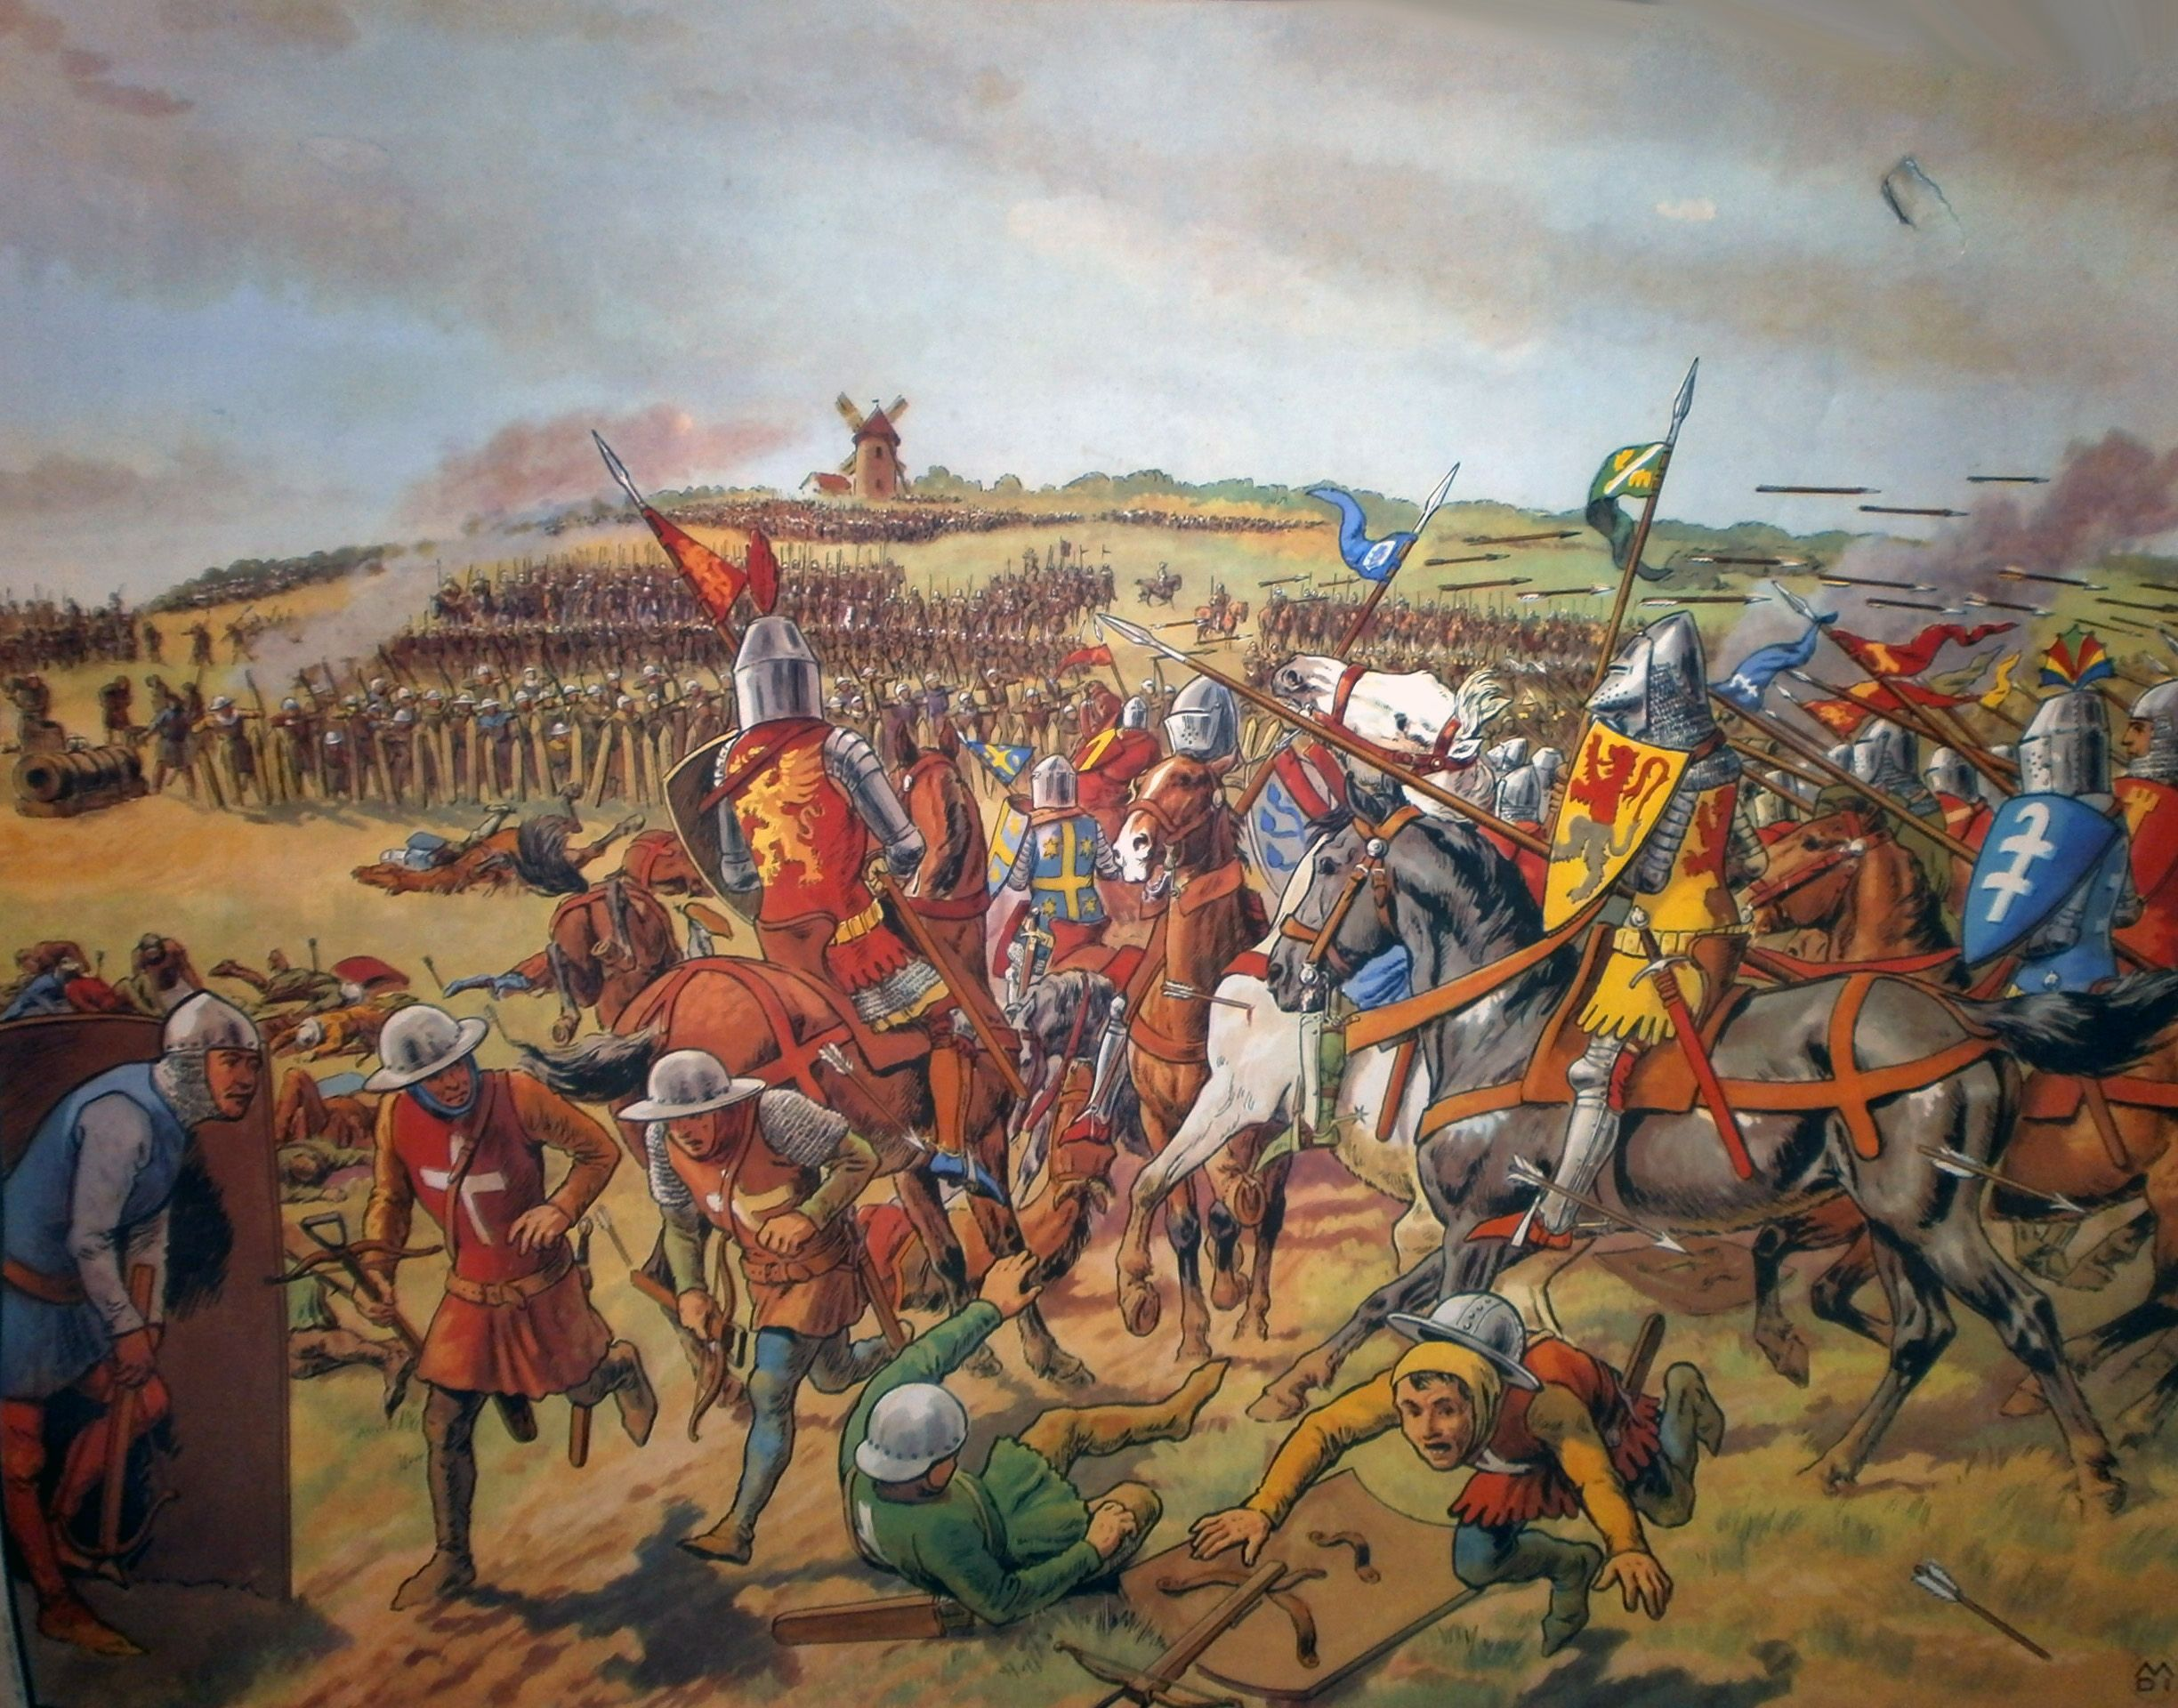 english troops assault the french fleet on the orne river under french knights and italian pavise crossbowmen under fire at the battle of crecy 100 years